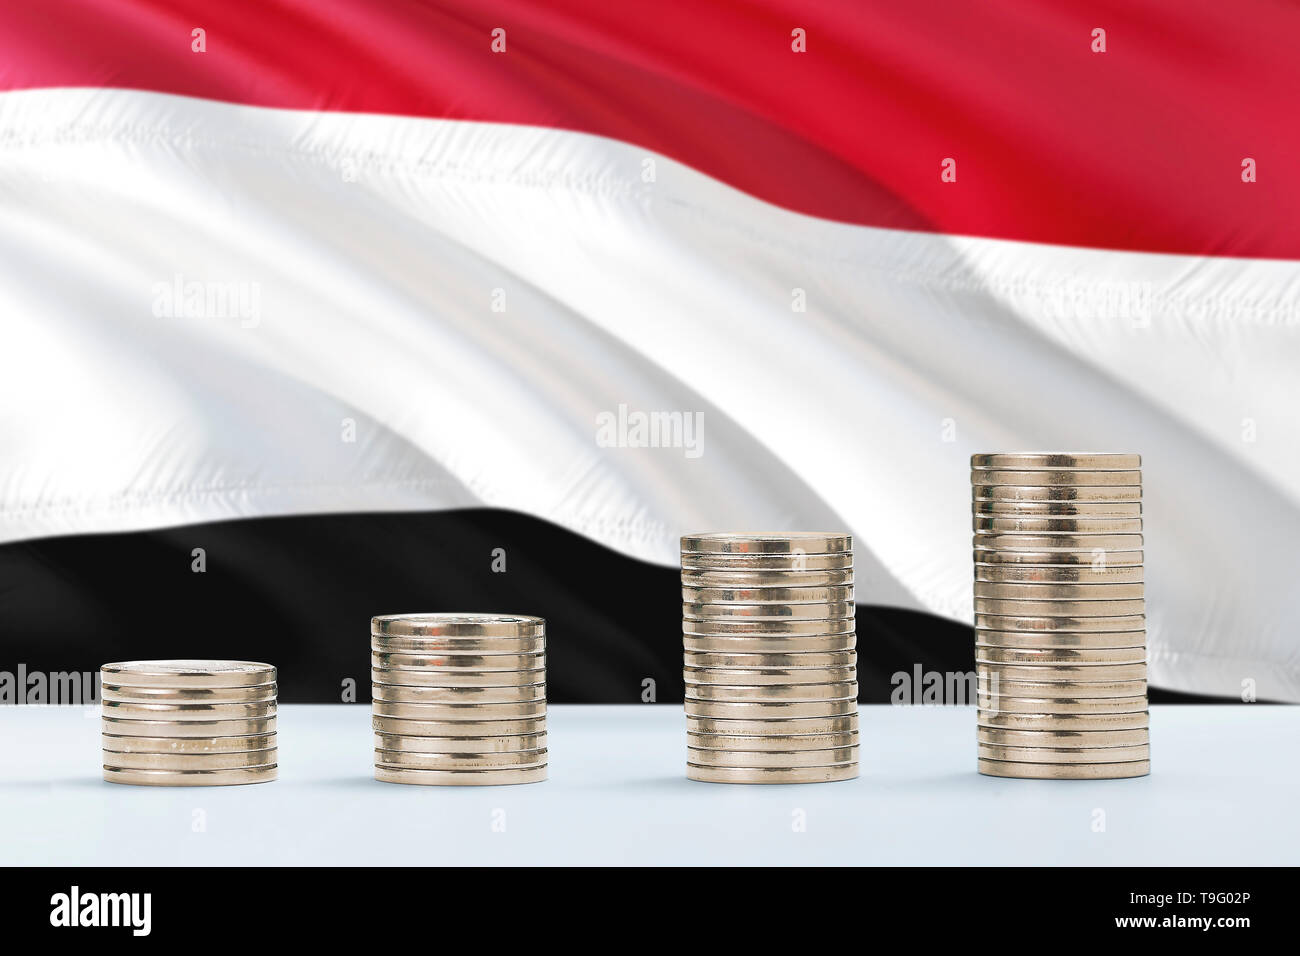 Yemen flag waving in the background with rows of coins for finance and business concept. Saving money. - Stock Image